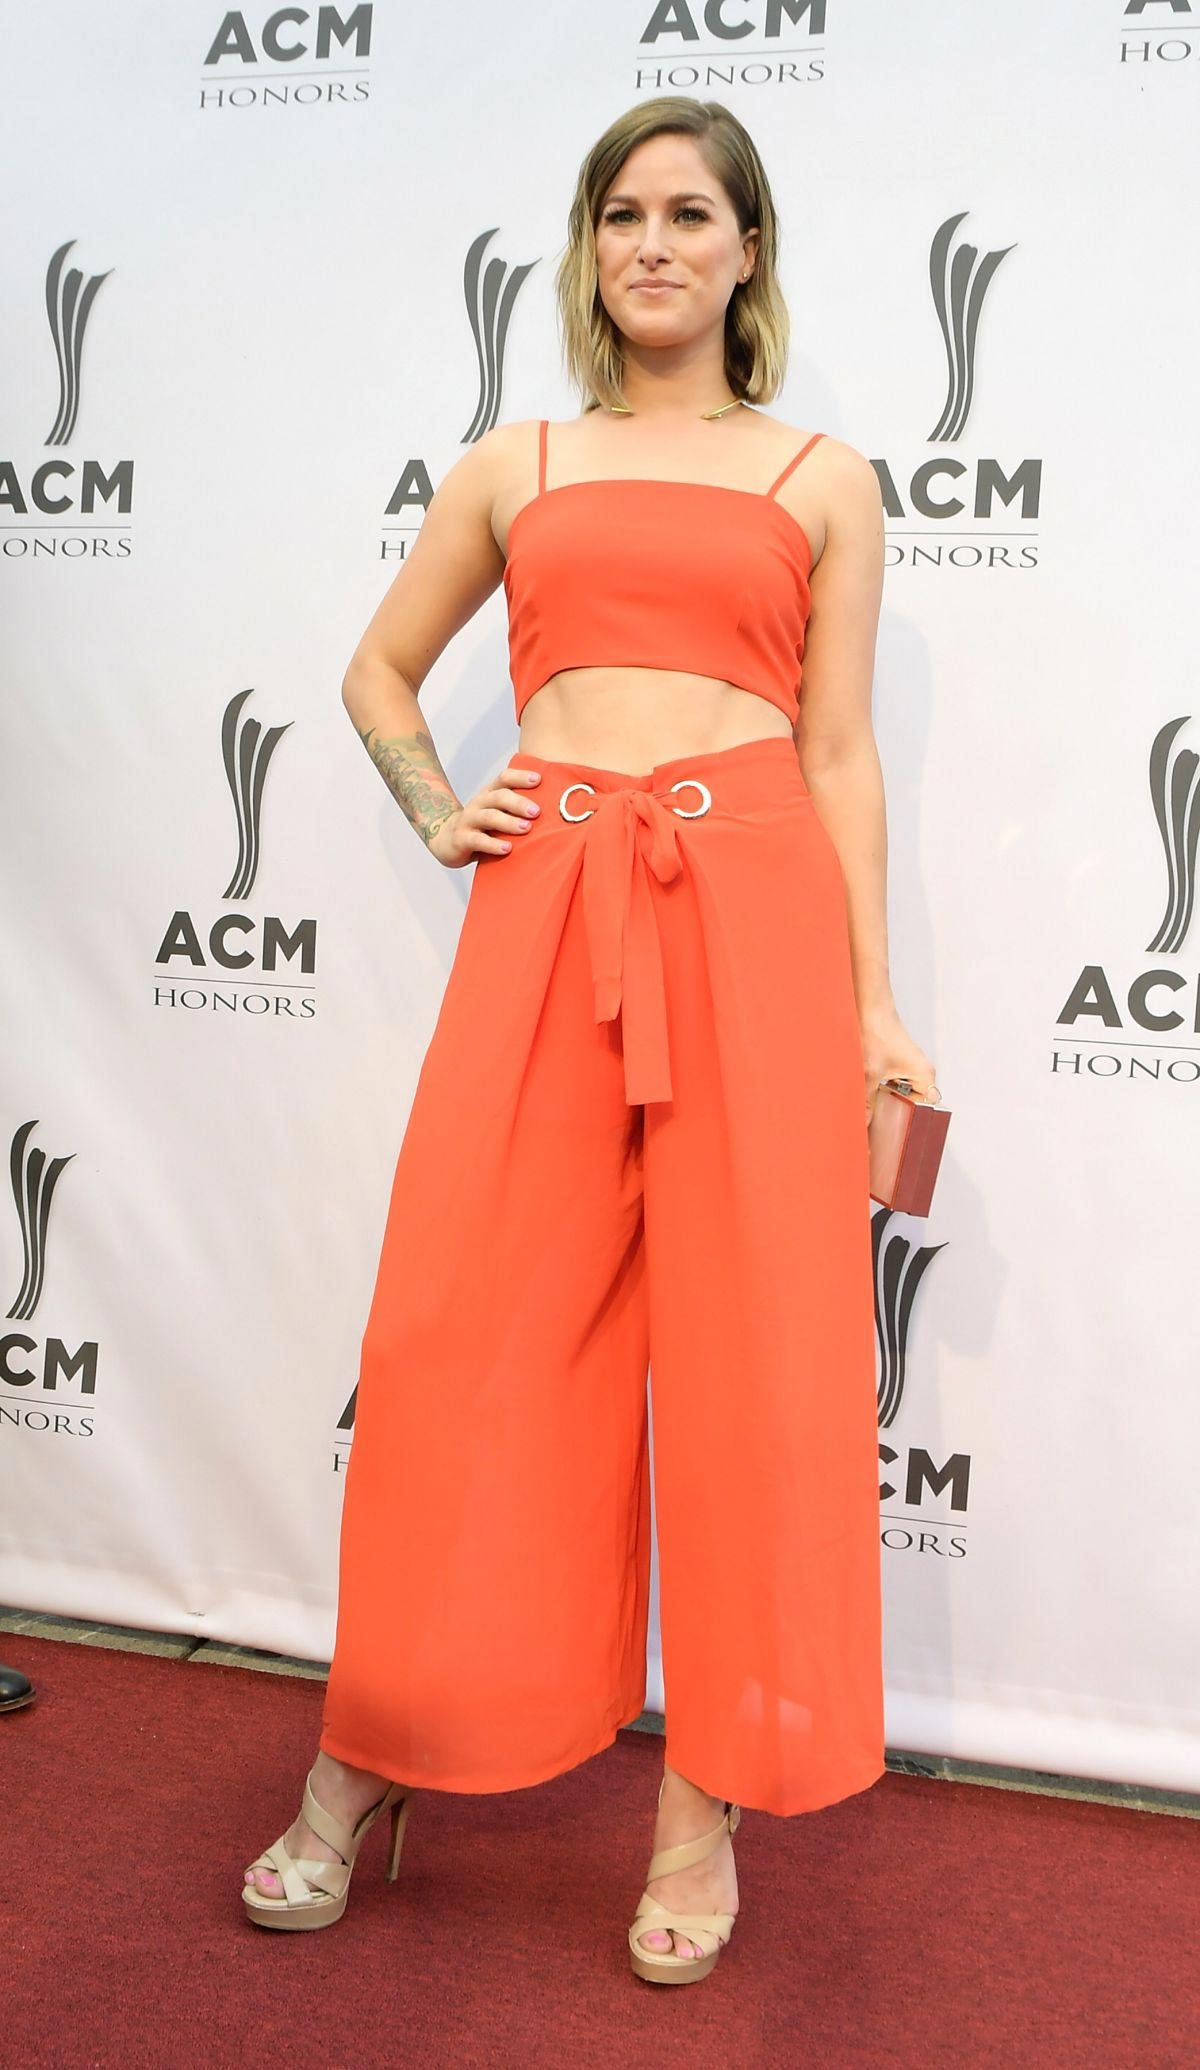 Cassadee Pope at 2018 ACM Honors in Nashville 2018/08/22 1